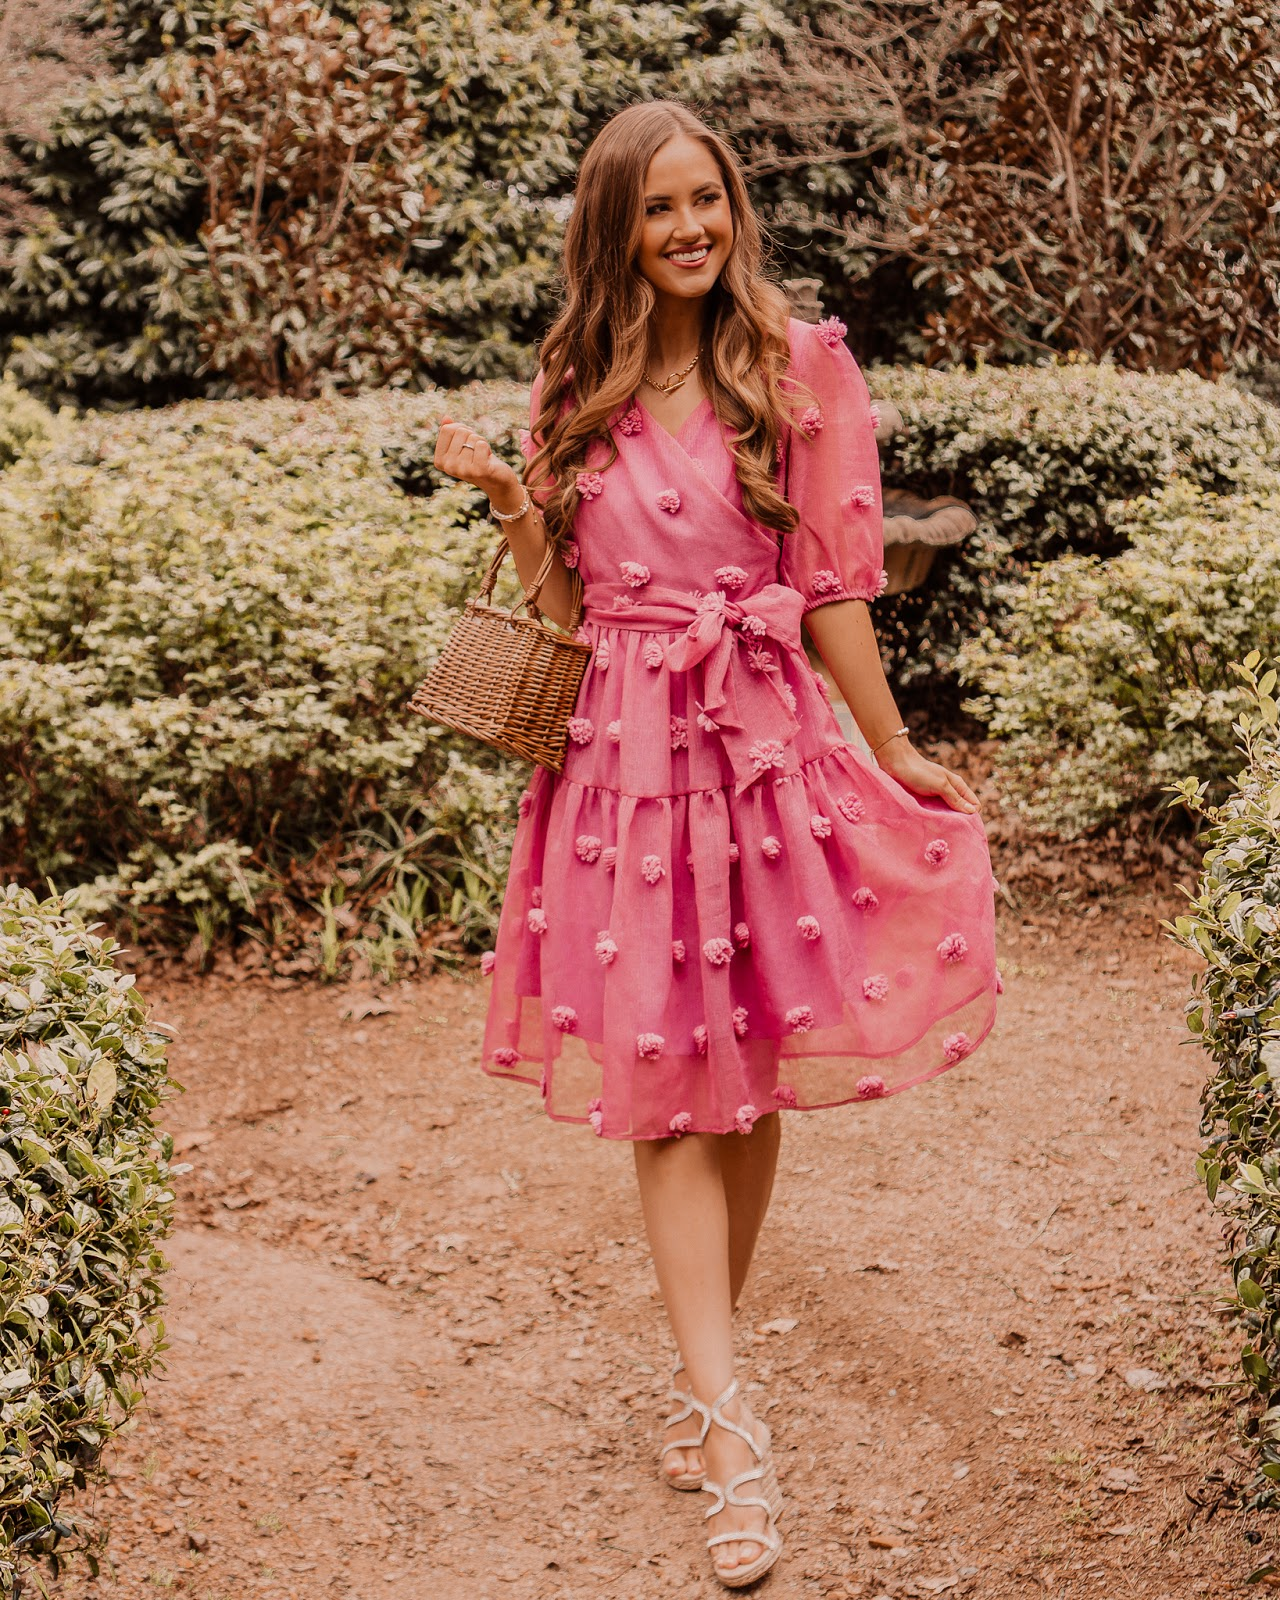 Pink pom pom dress, wedges, basket bag